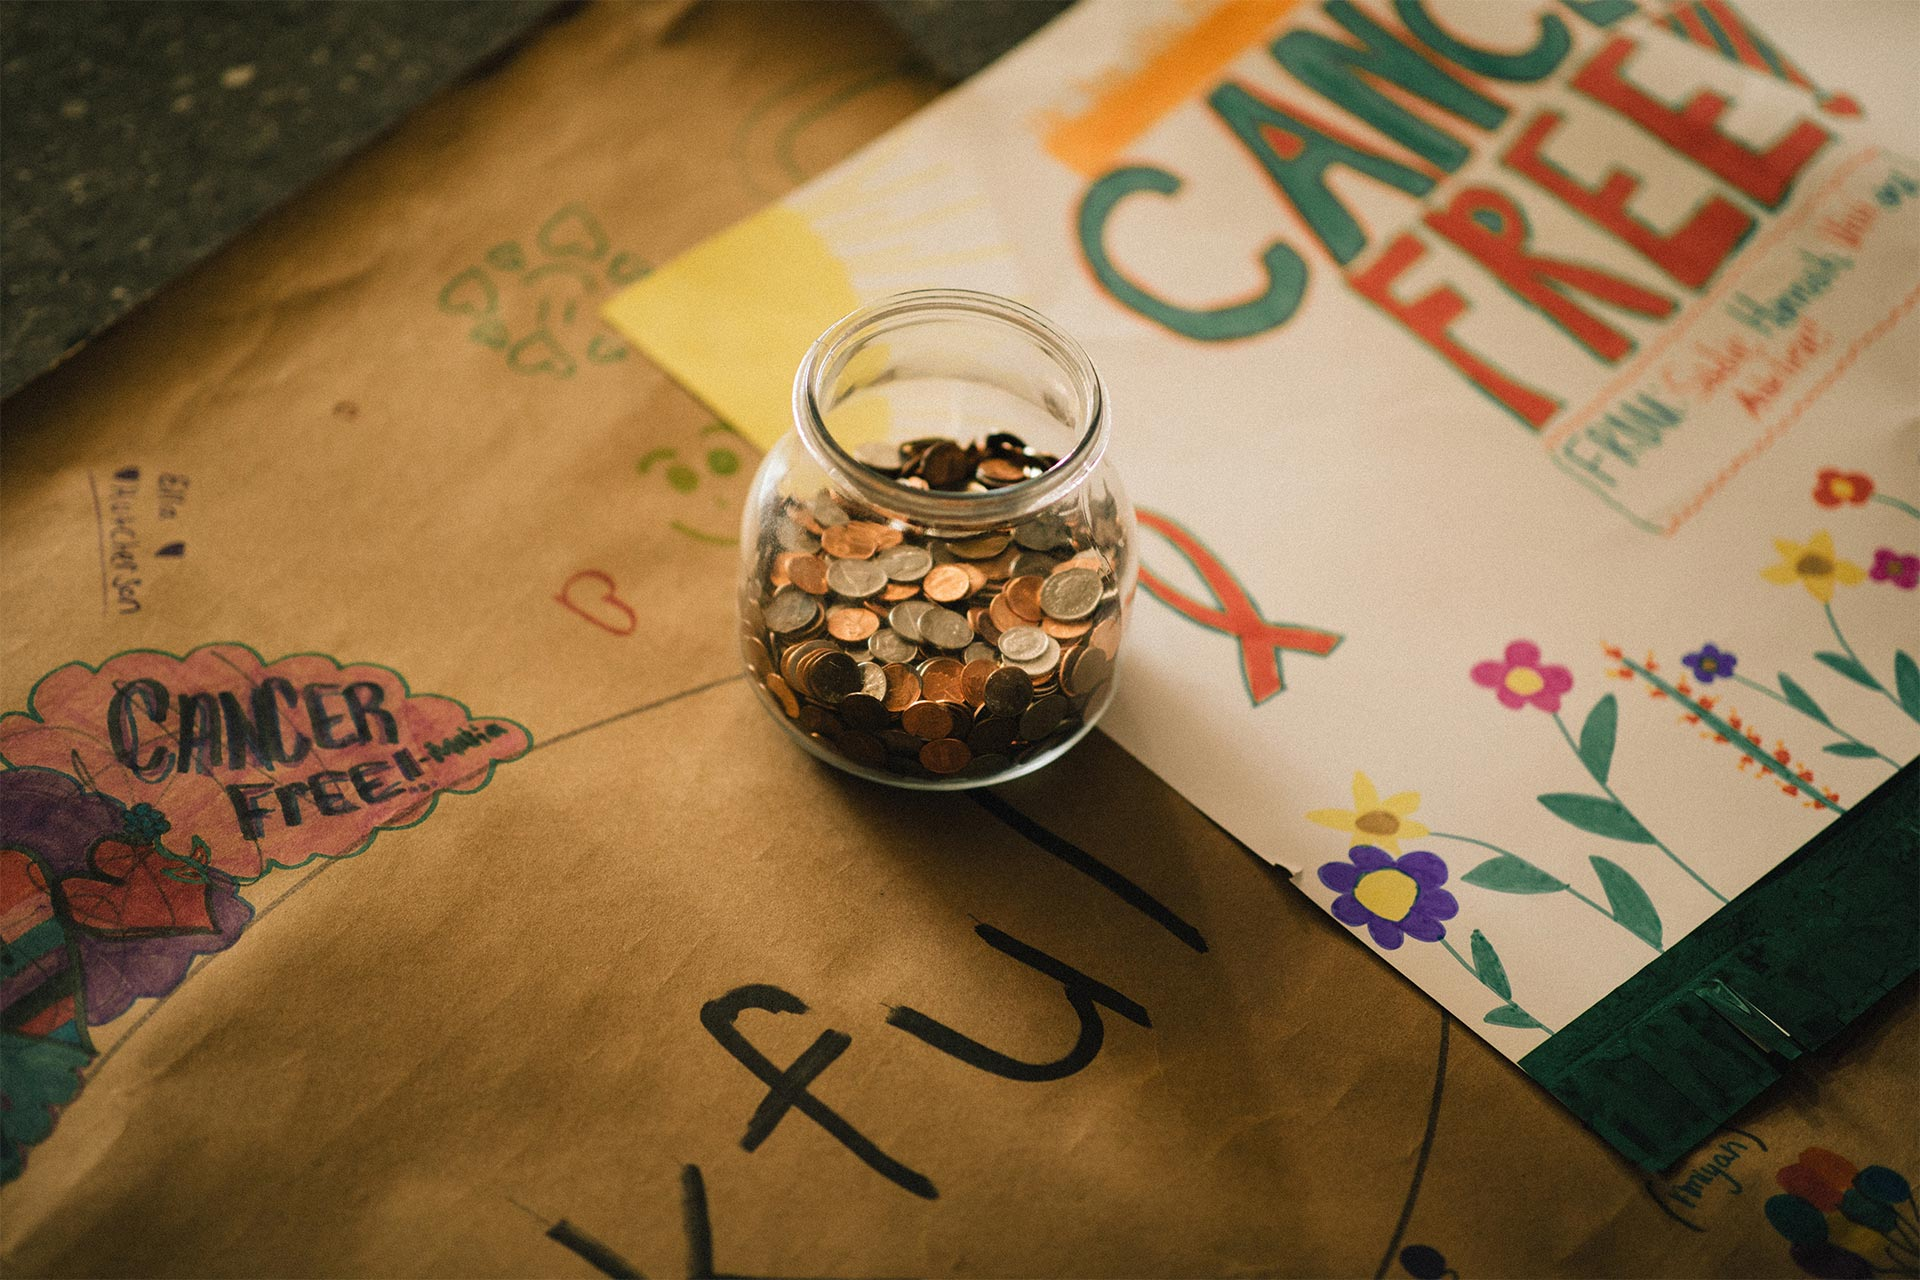 A glass jar full of coins and hand drawn posters